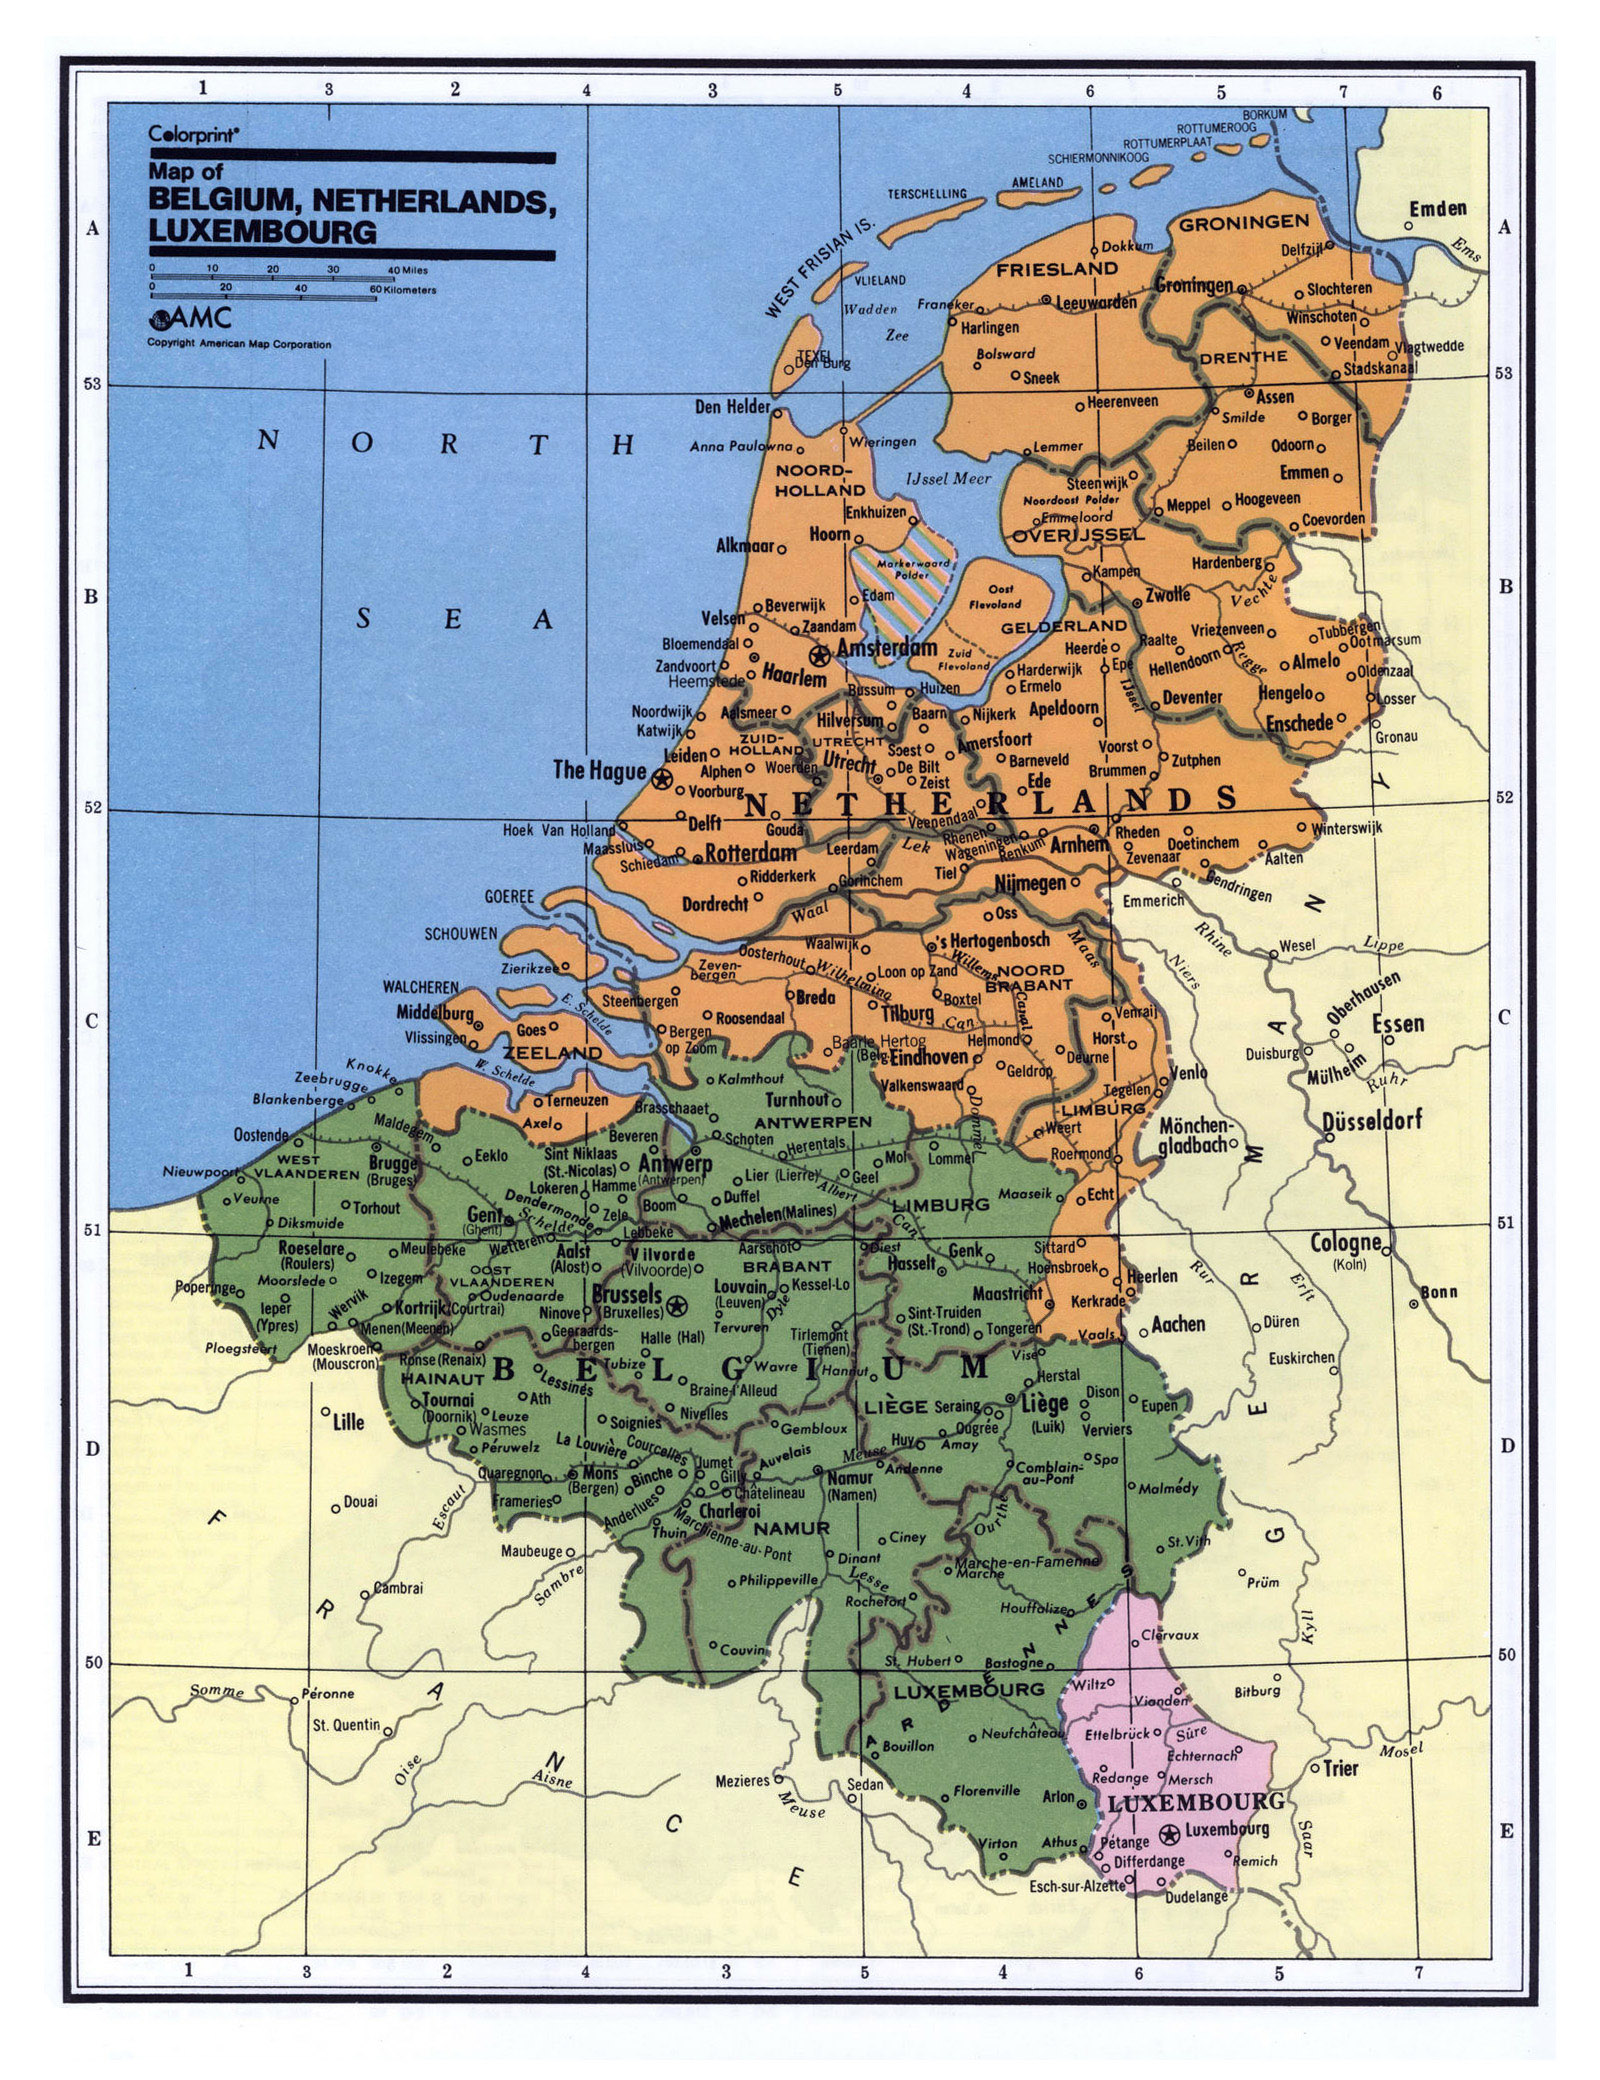 detailed political and administrative map of belgium netherlands and luxembourg